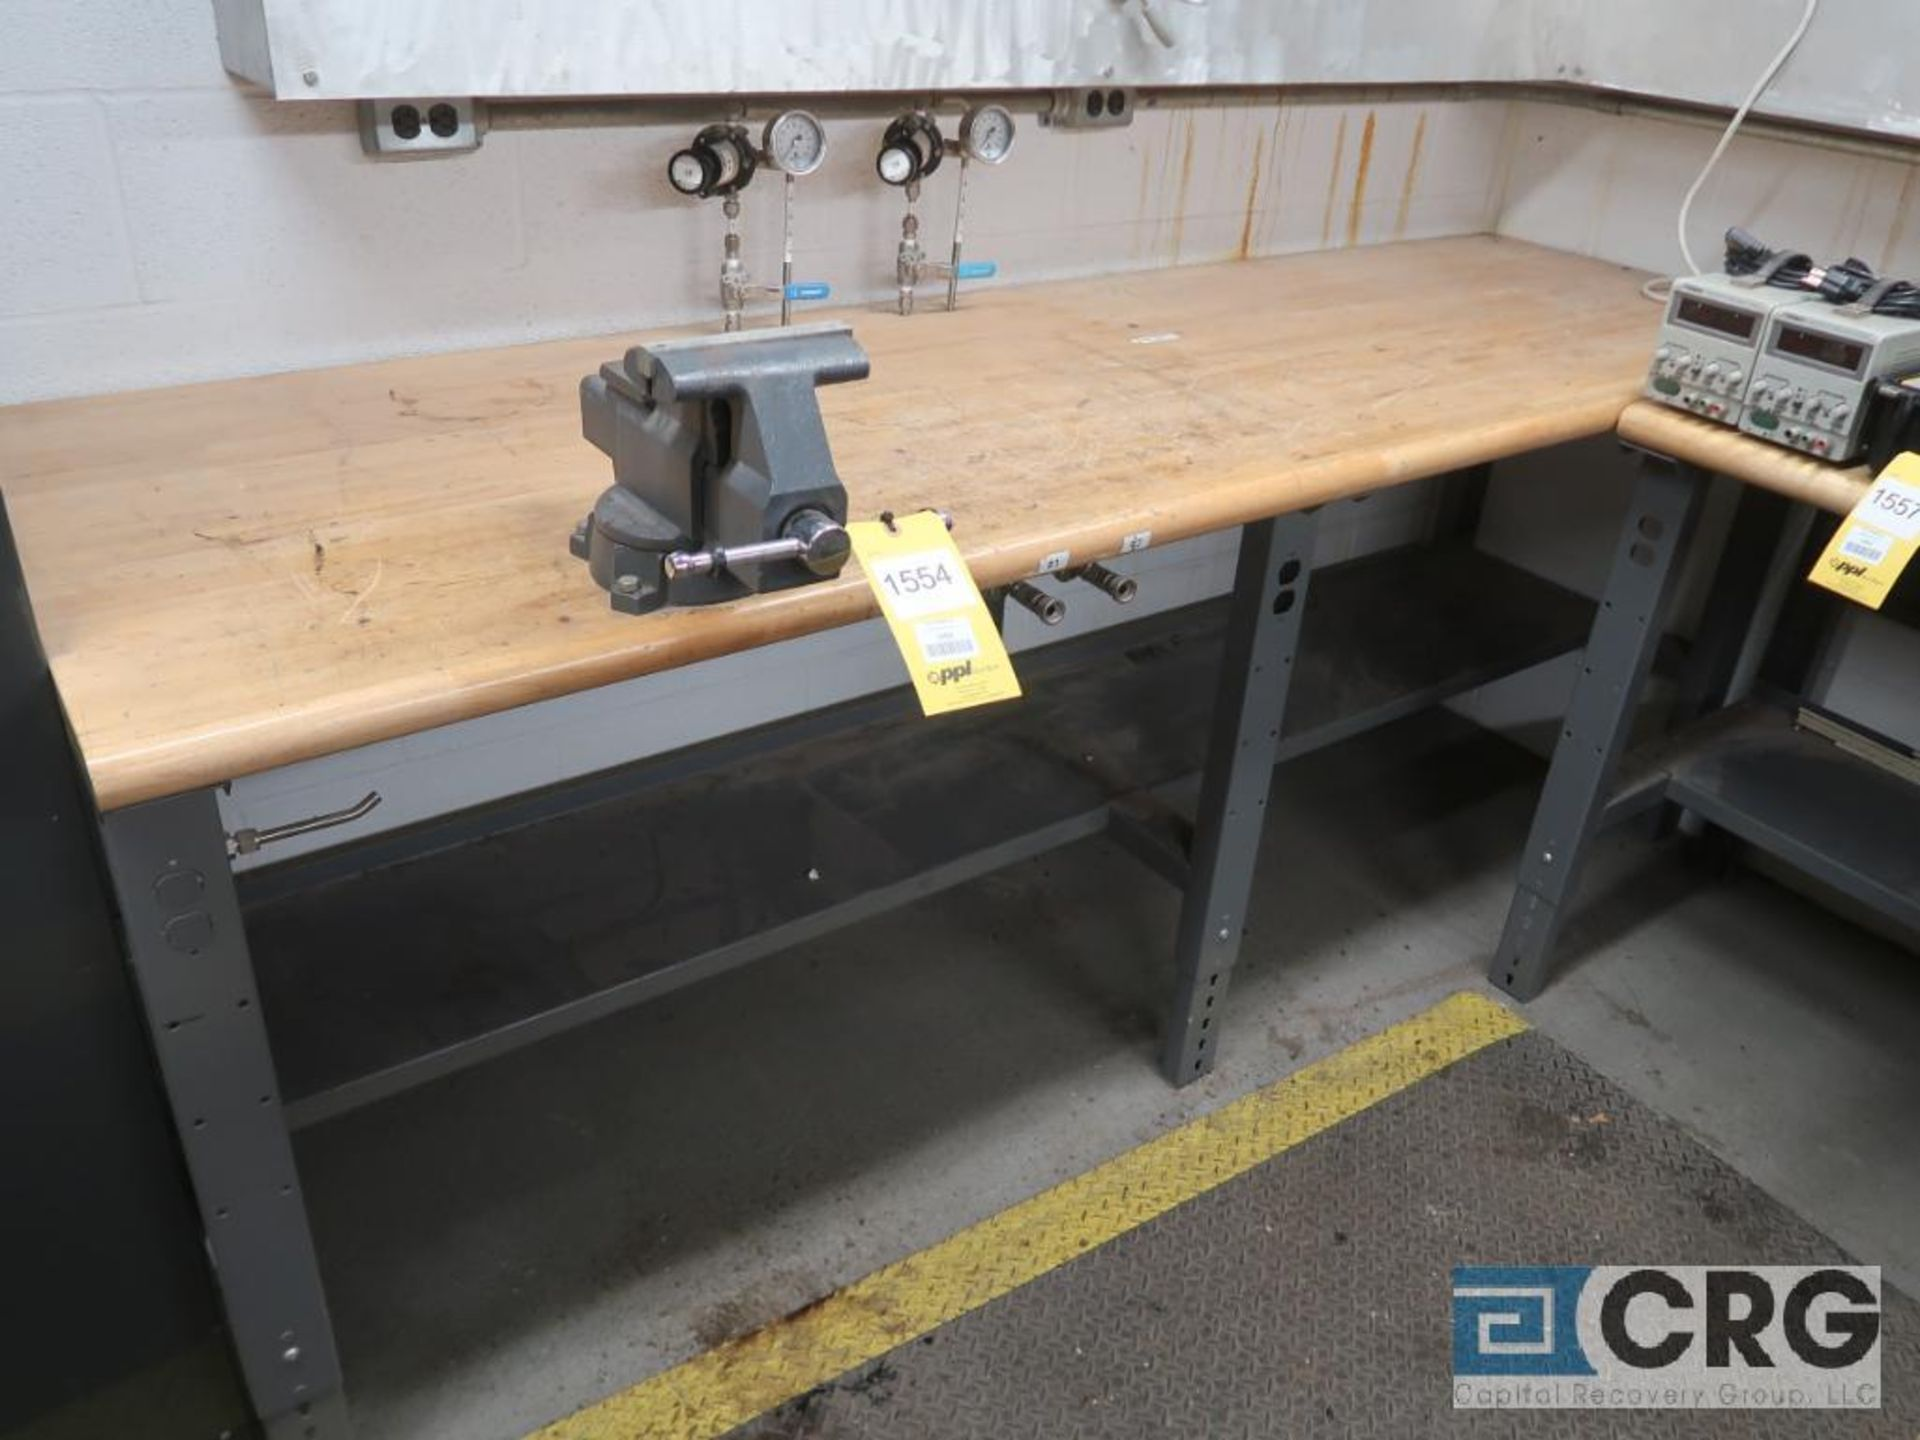 Lot of (3) work benches including (1) 8 ft. x 30 in. with 6 in. vise mounted, (1) 6 ft. 30 in.